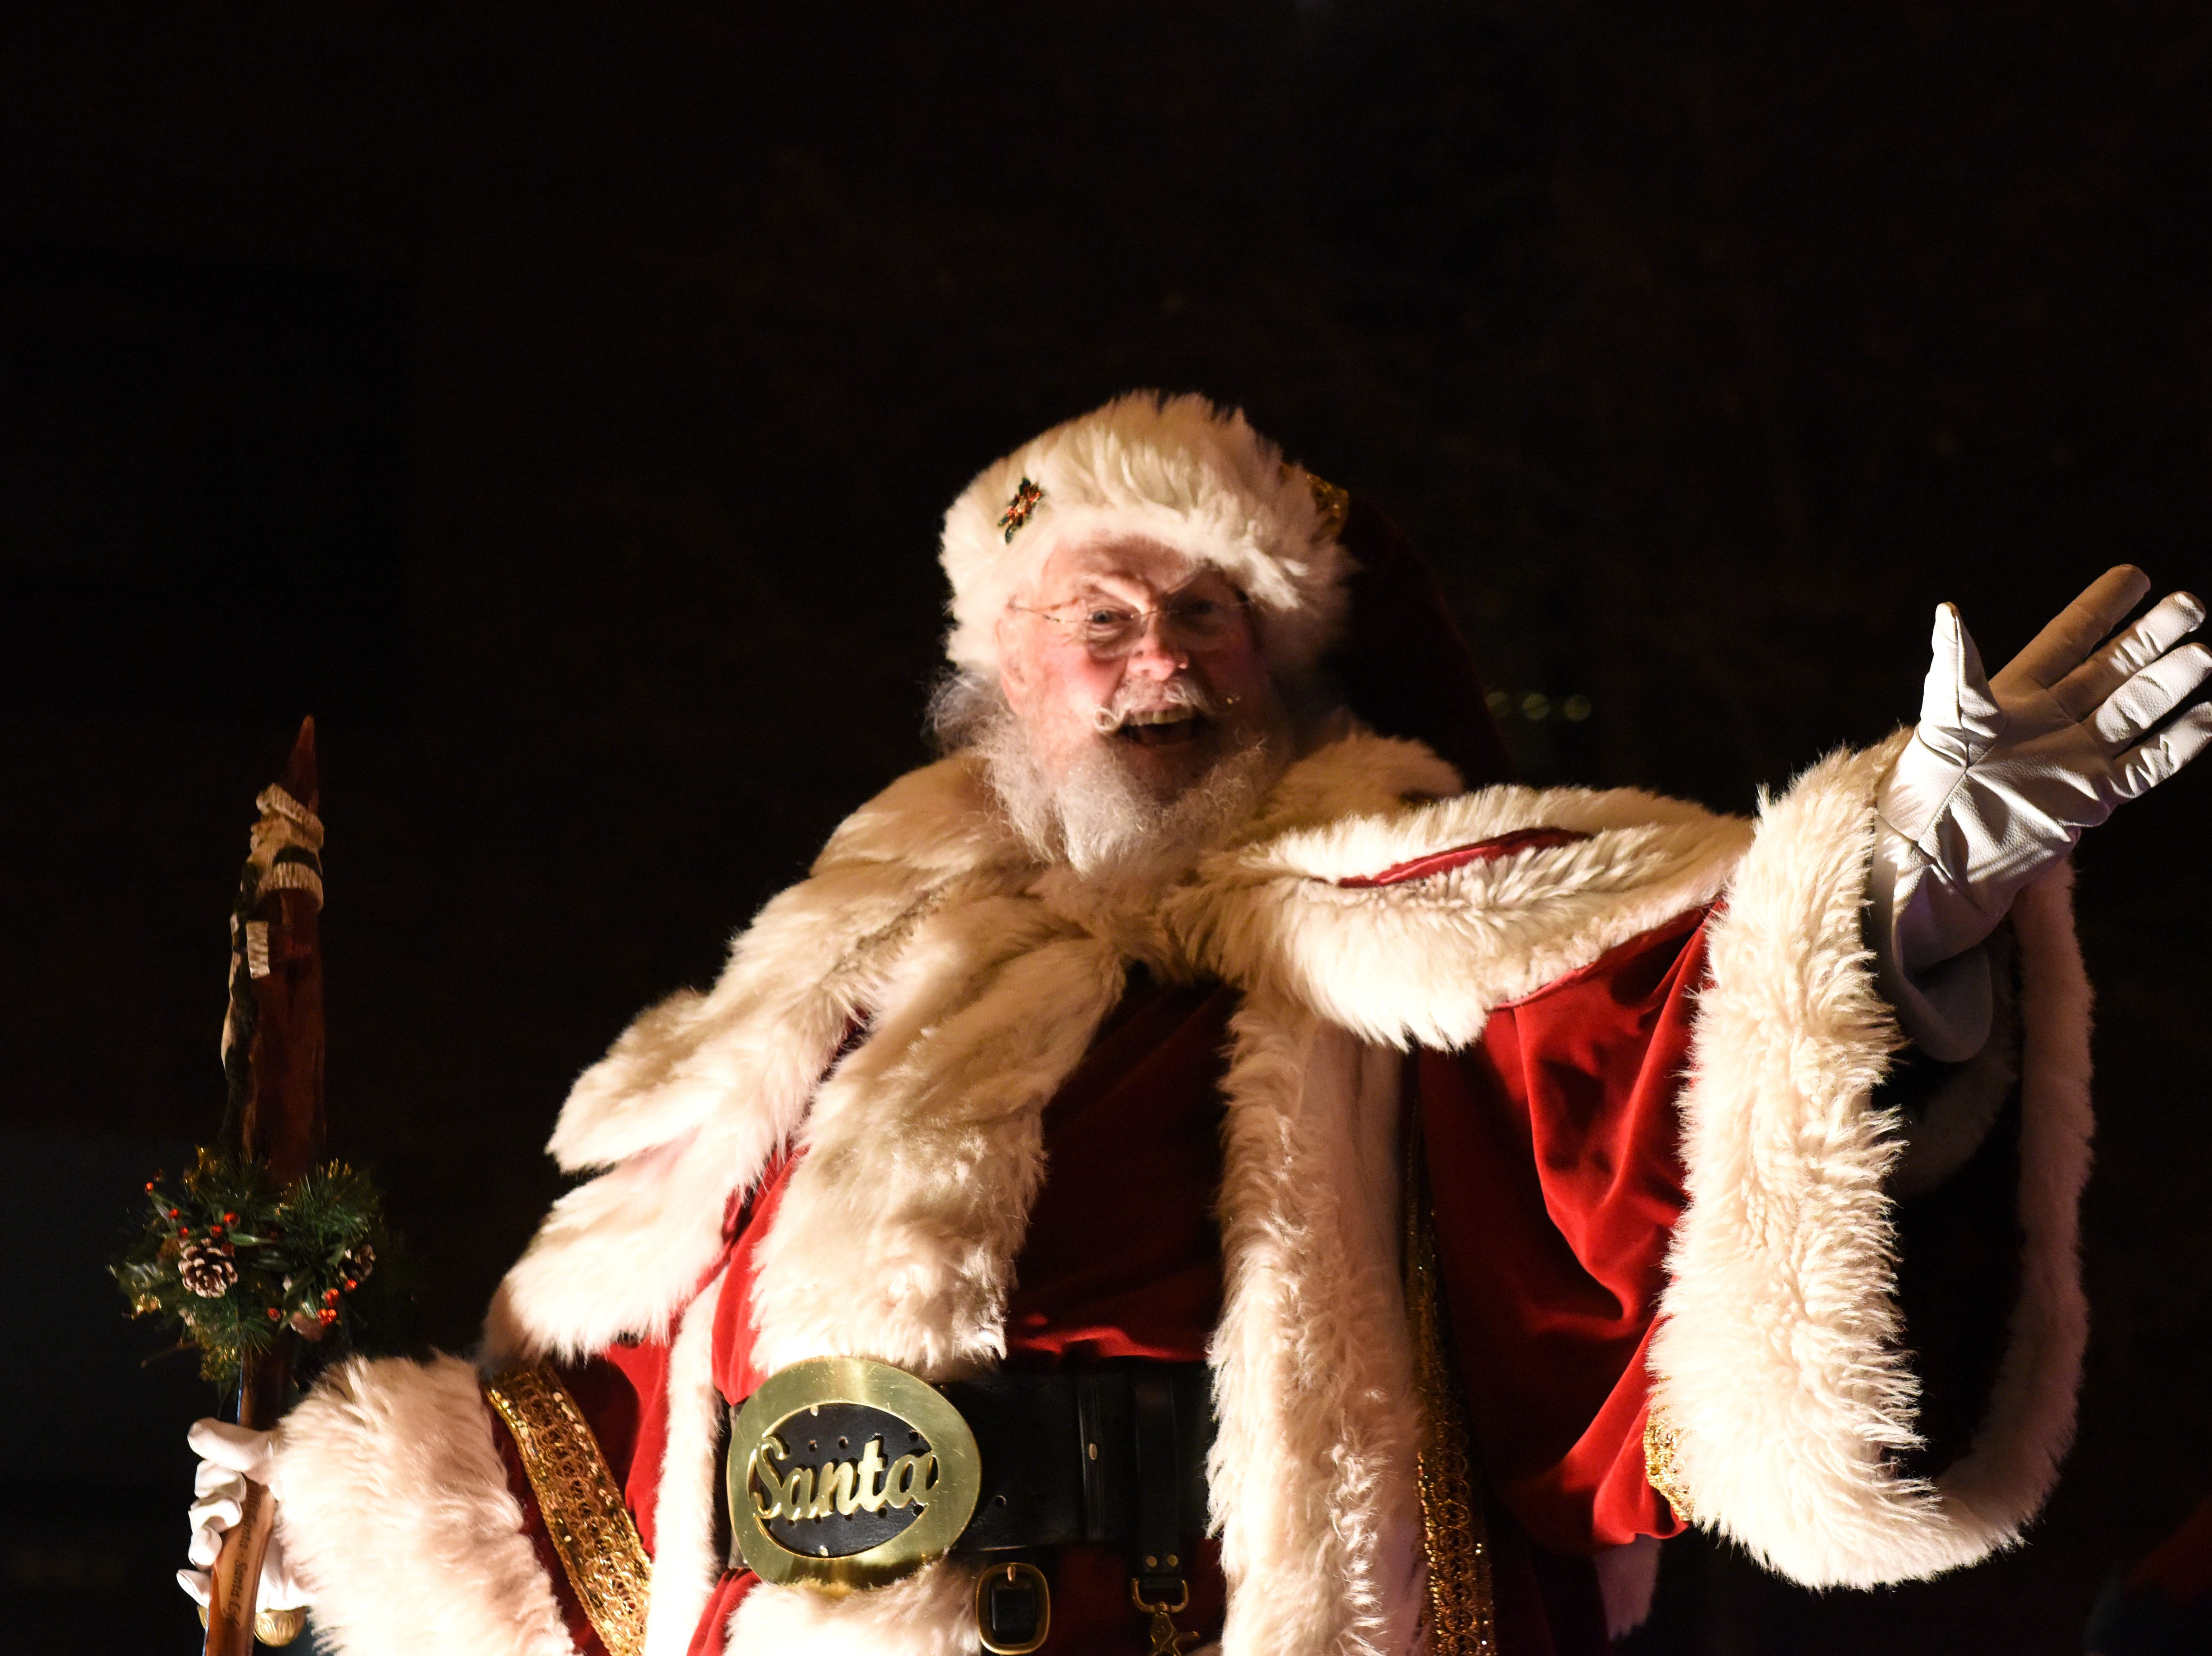 Santa waves to the crowd during the annual Parade of Lights in downtown Sioux Falls, S.D., Friday, Nov. 23, 2018.